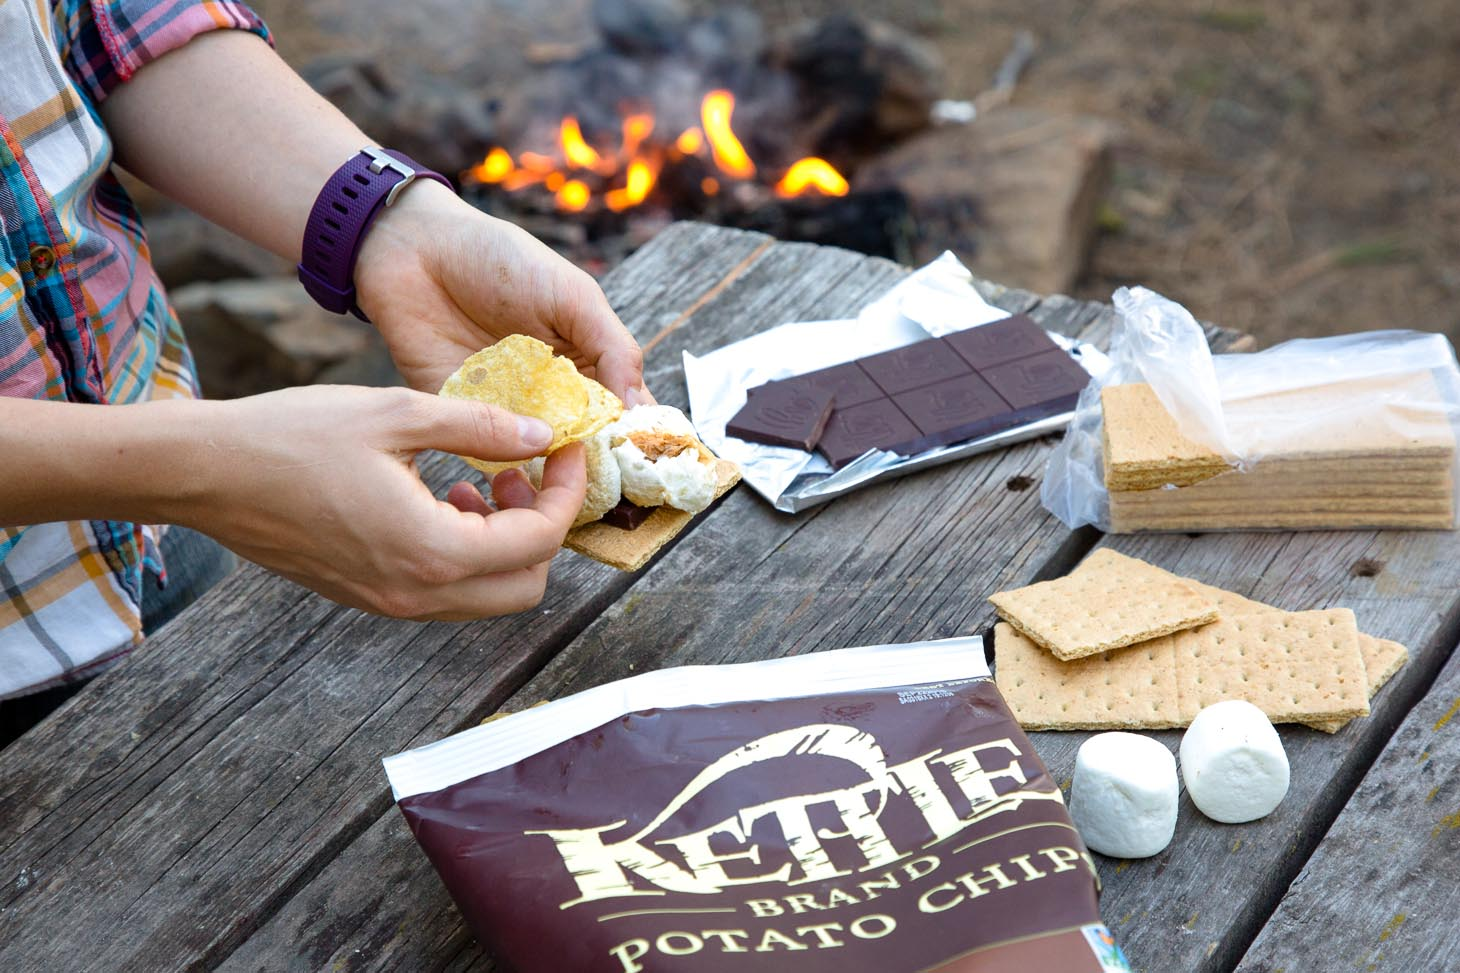 S'more ingredients (chocolate, marshmallows, and graham crackers) on a picnic table.